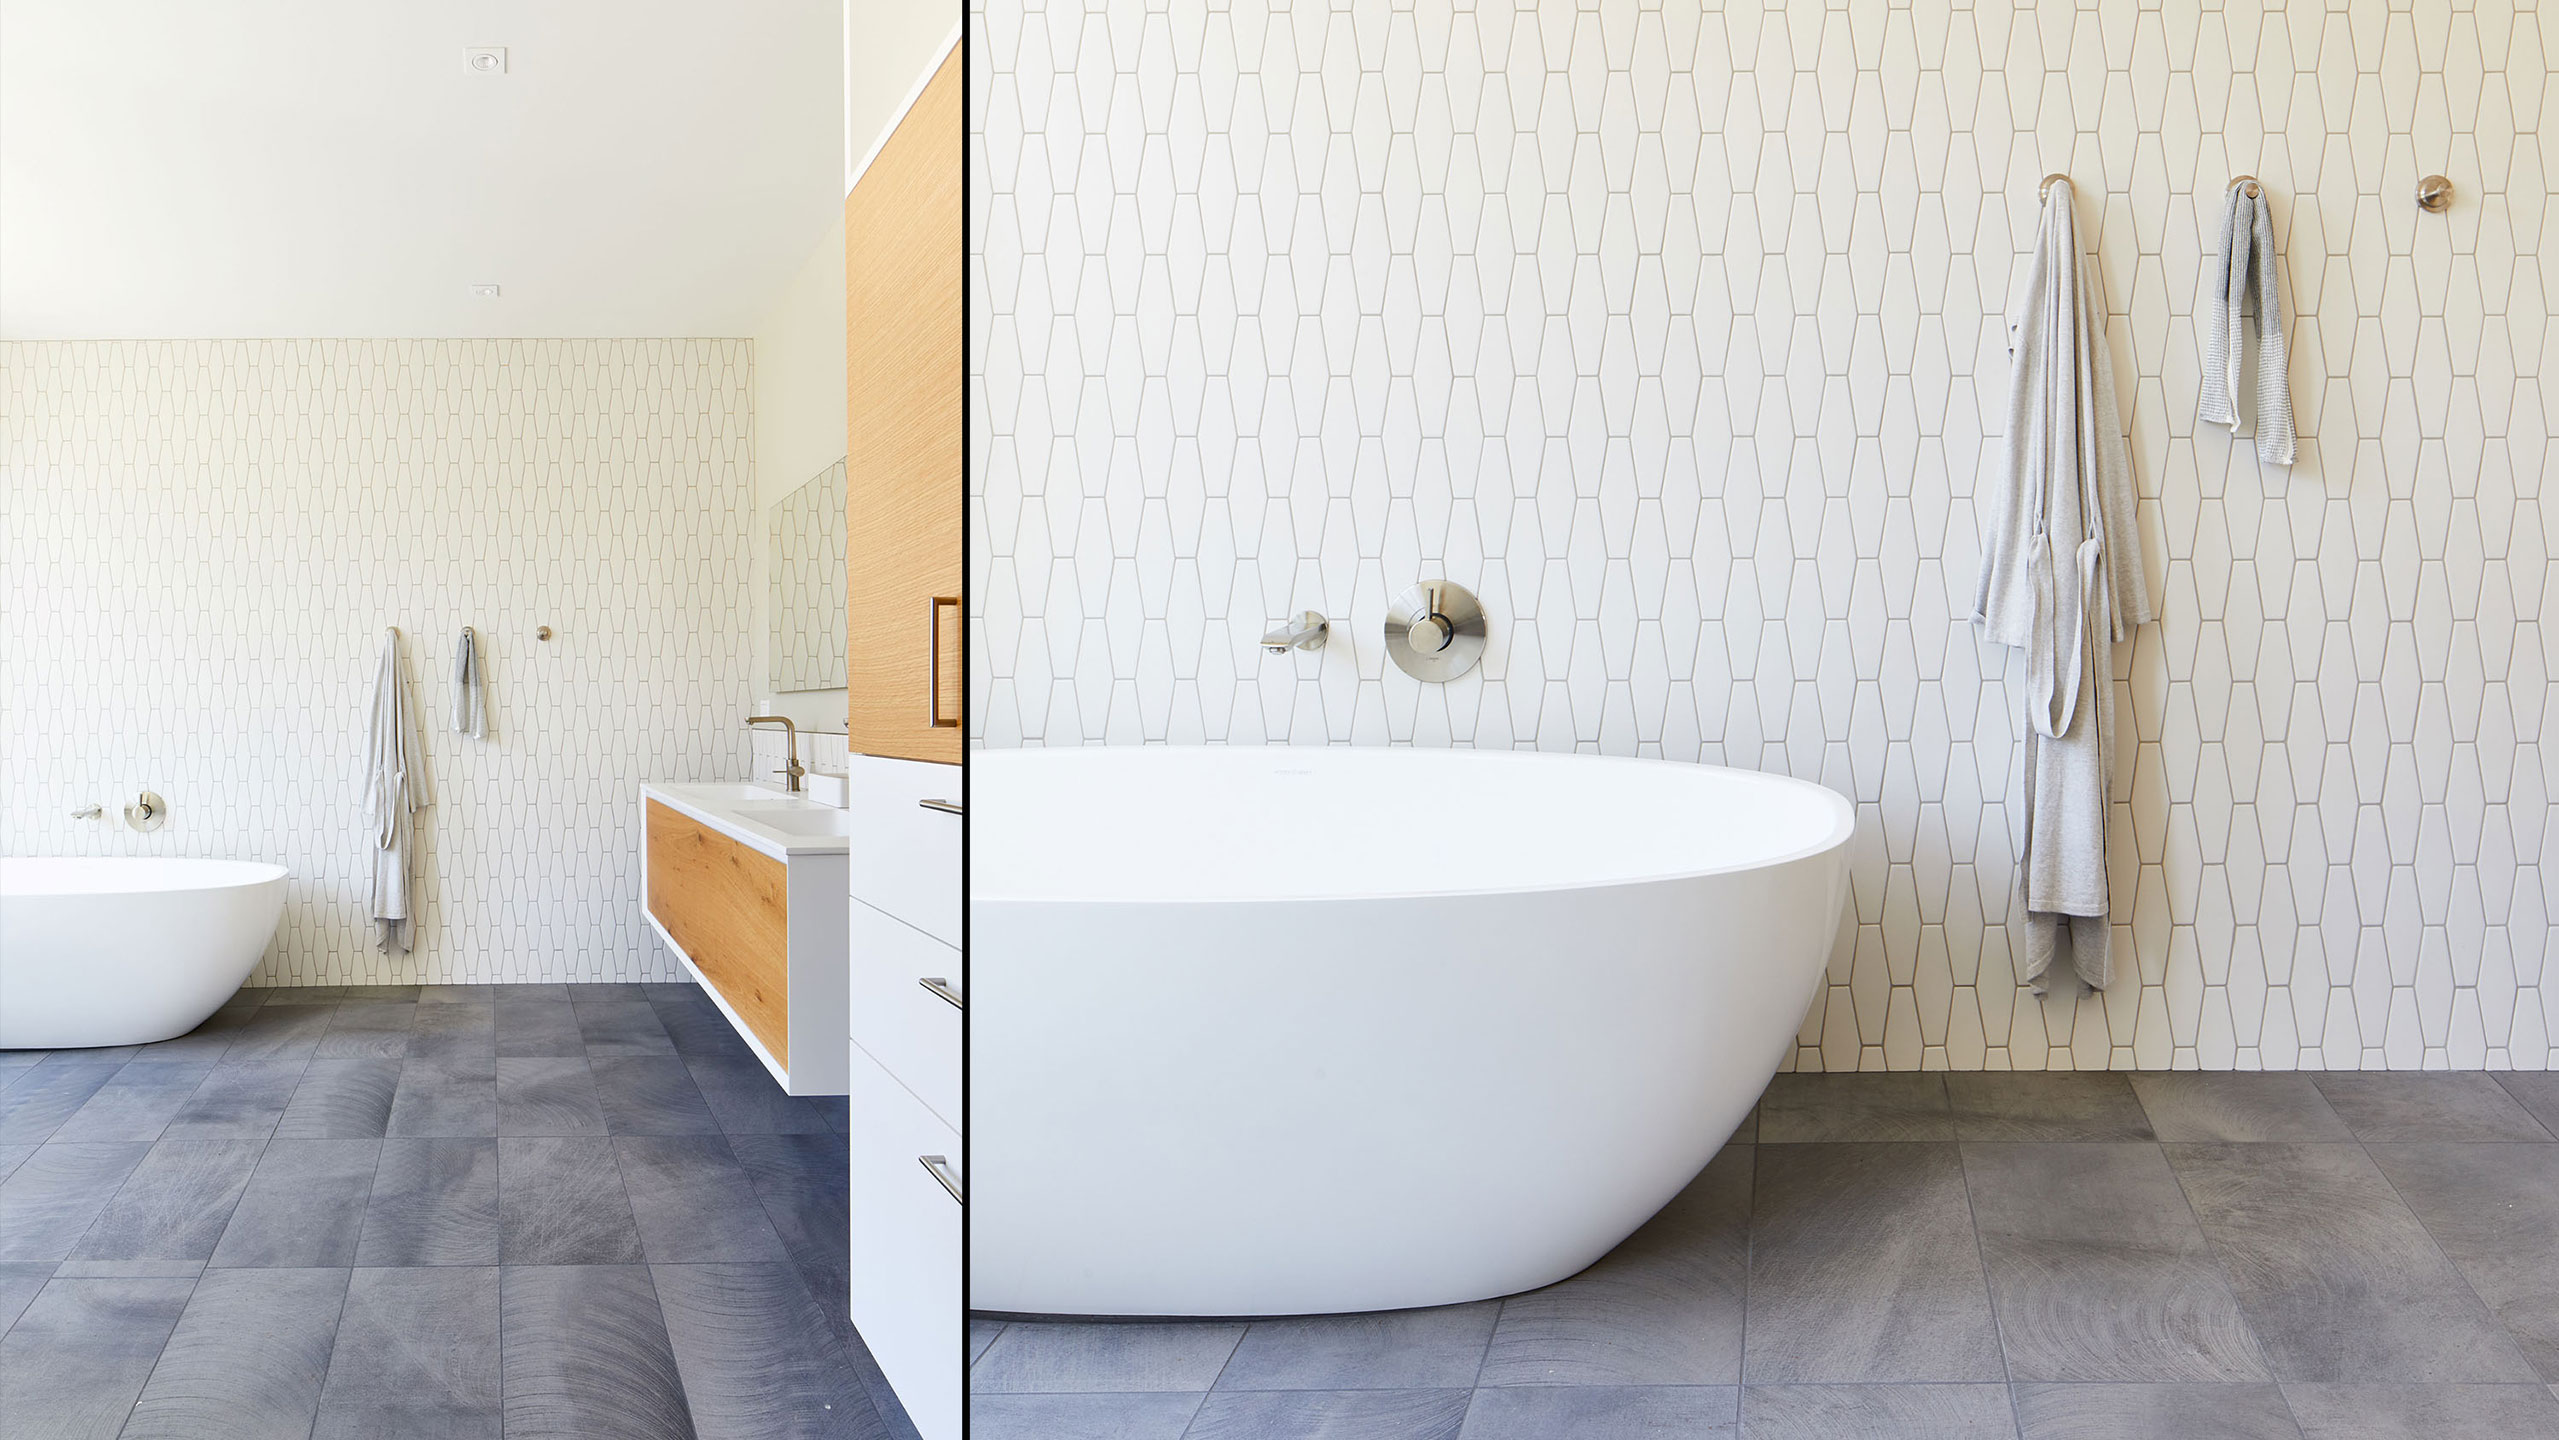 Farmhouse Interior Design Sonoma County 7 contemporary bathroom with tub grey and white tile